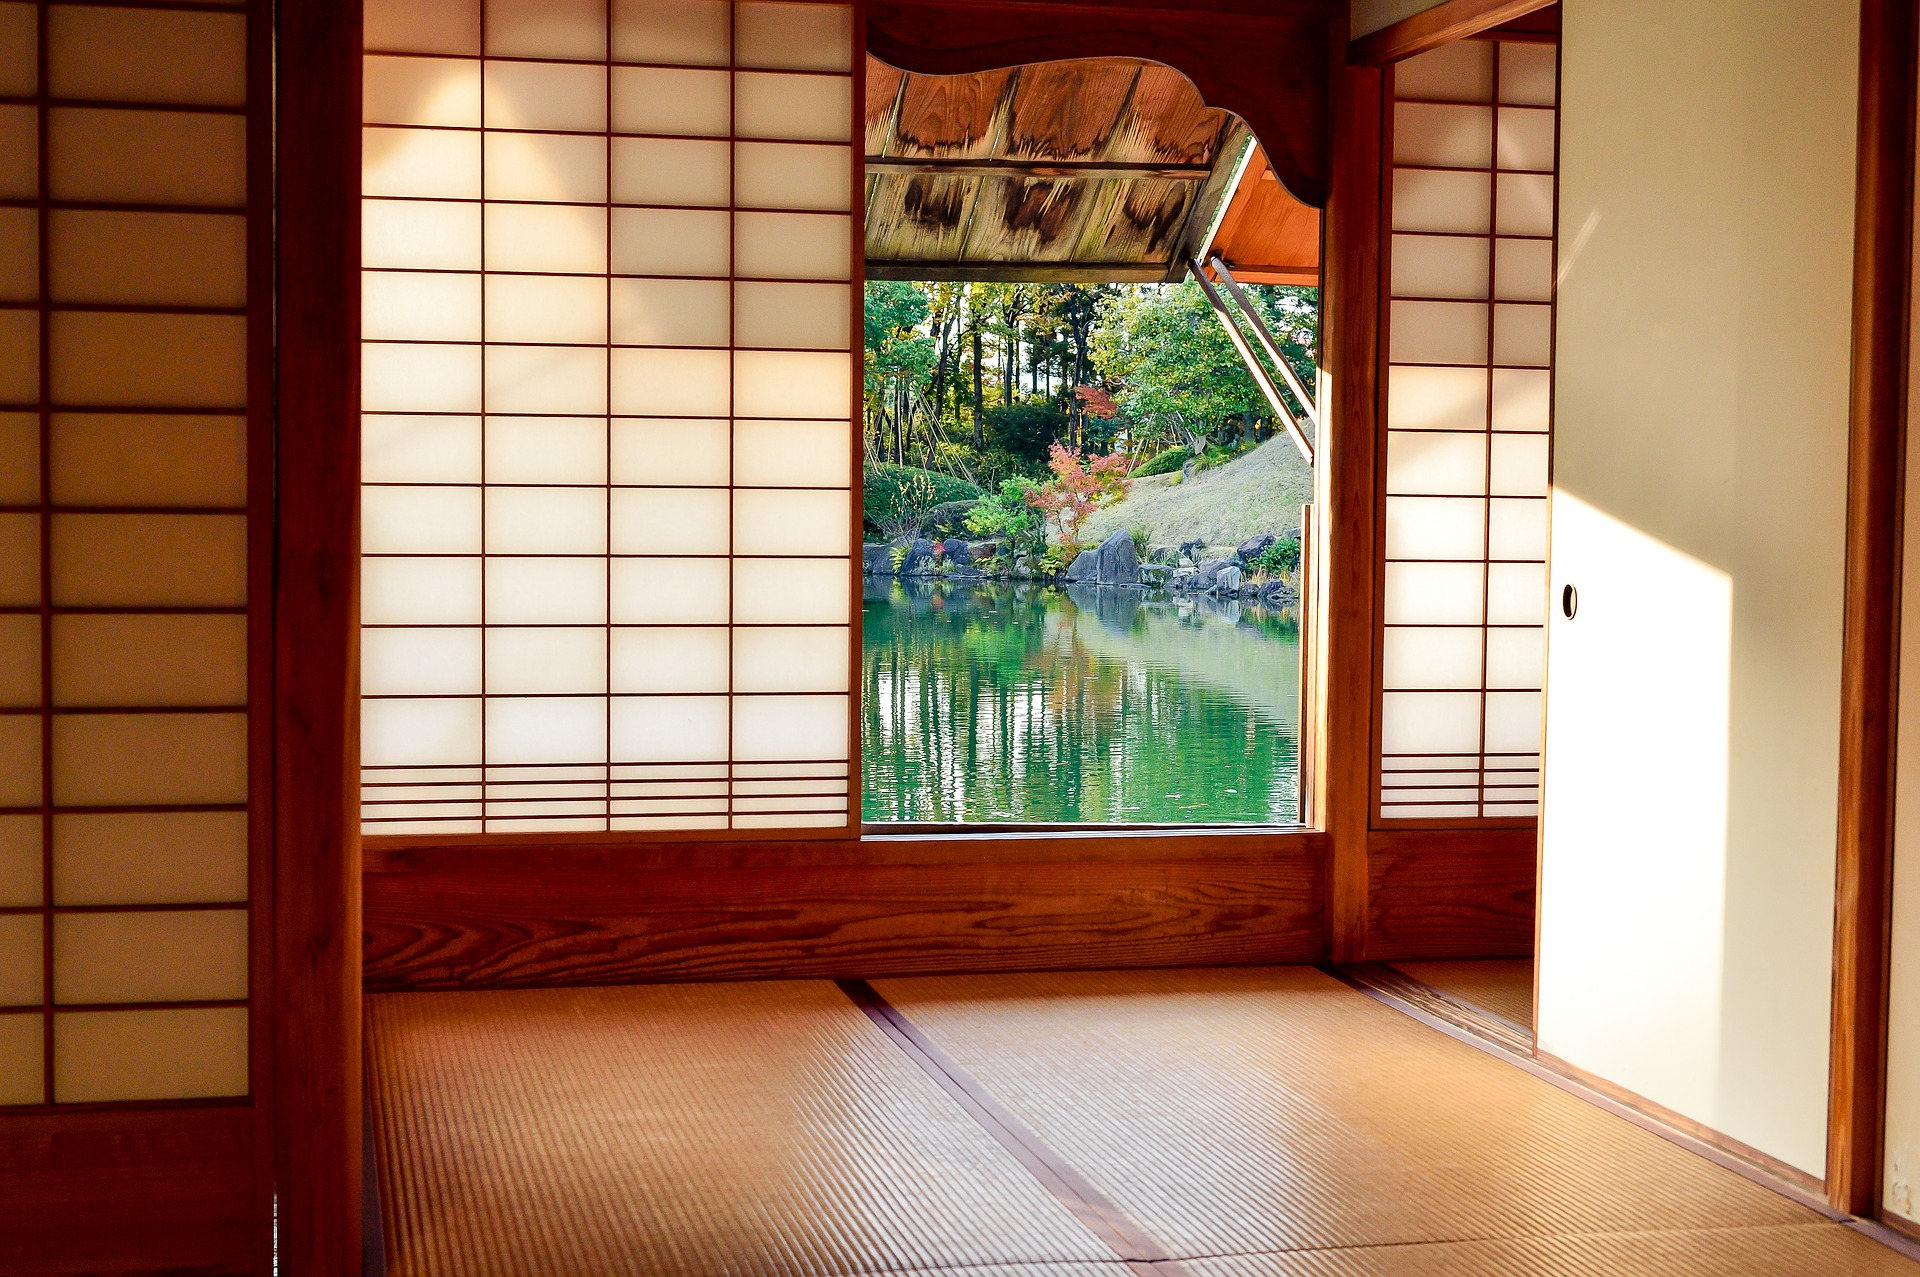 Japanese Style Room with fish pond